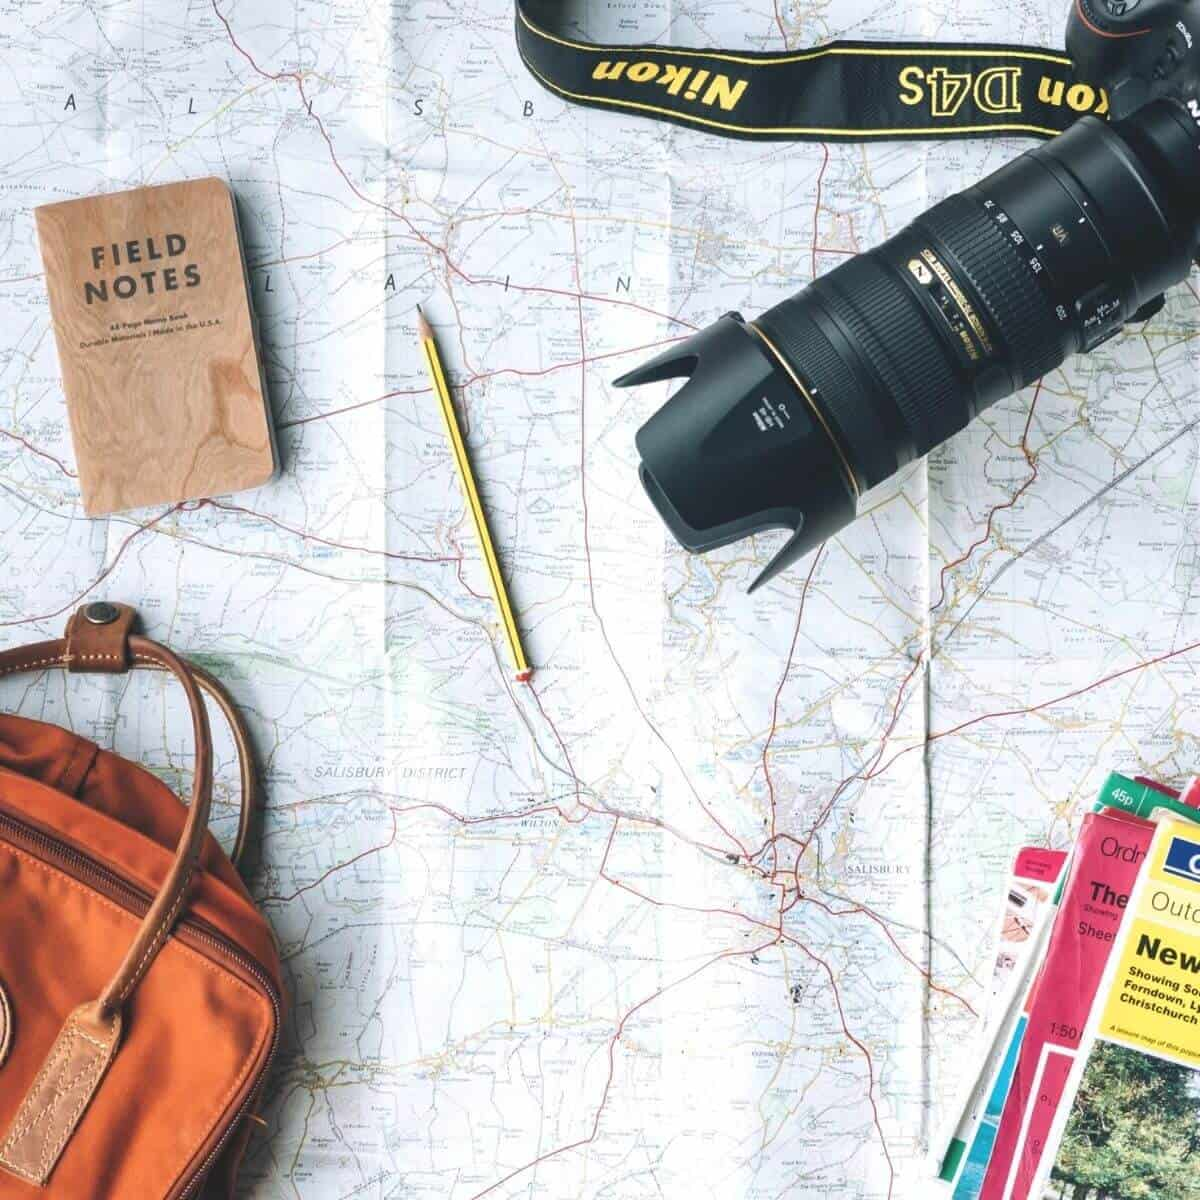 Camera, notebook, backpack, and books on top of a map.